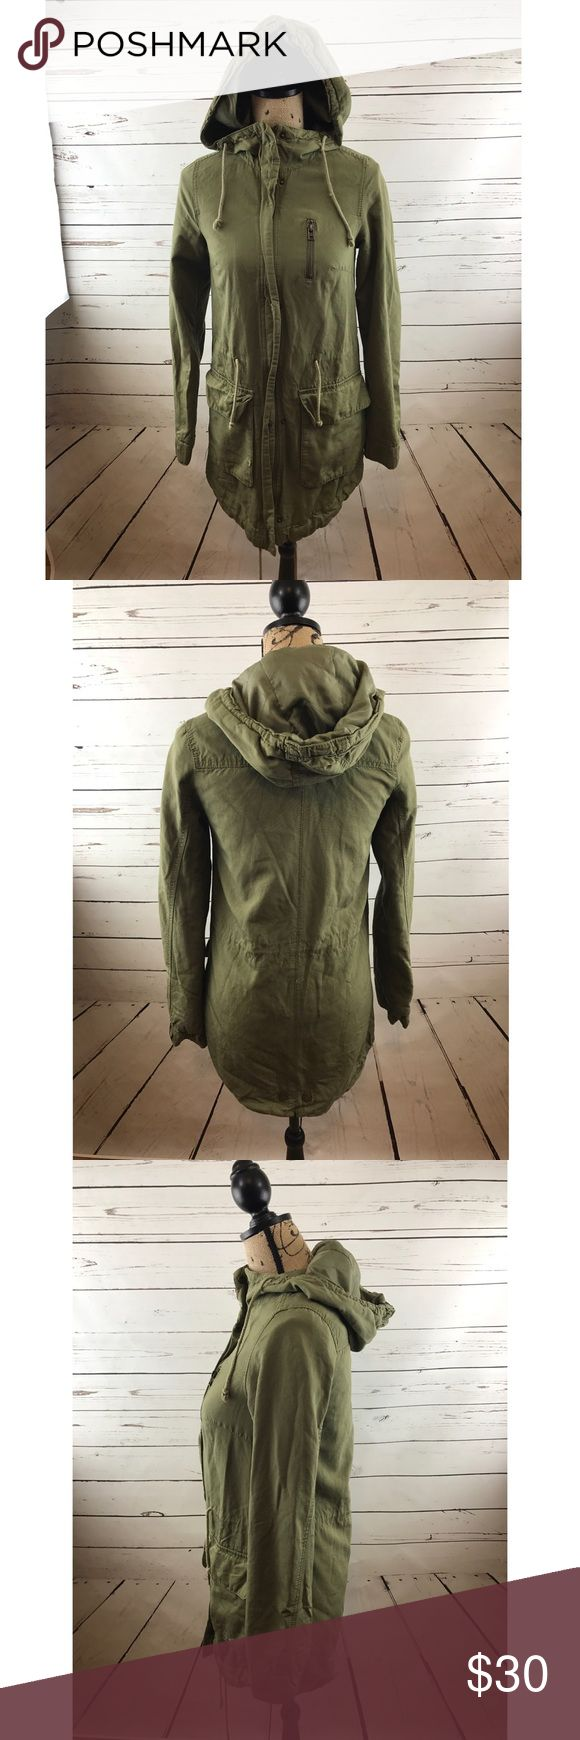 """H&M Divided Olive Green Anorak Jacket In gently worn condition size 2. armpit to armpit length is 18"""" shoulder to bottom of jacket is 30"""" and shoulder to sleeve is 24"""" sorry no trades! H&M Jackets & Coats"""